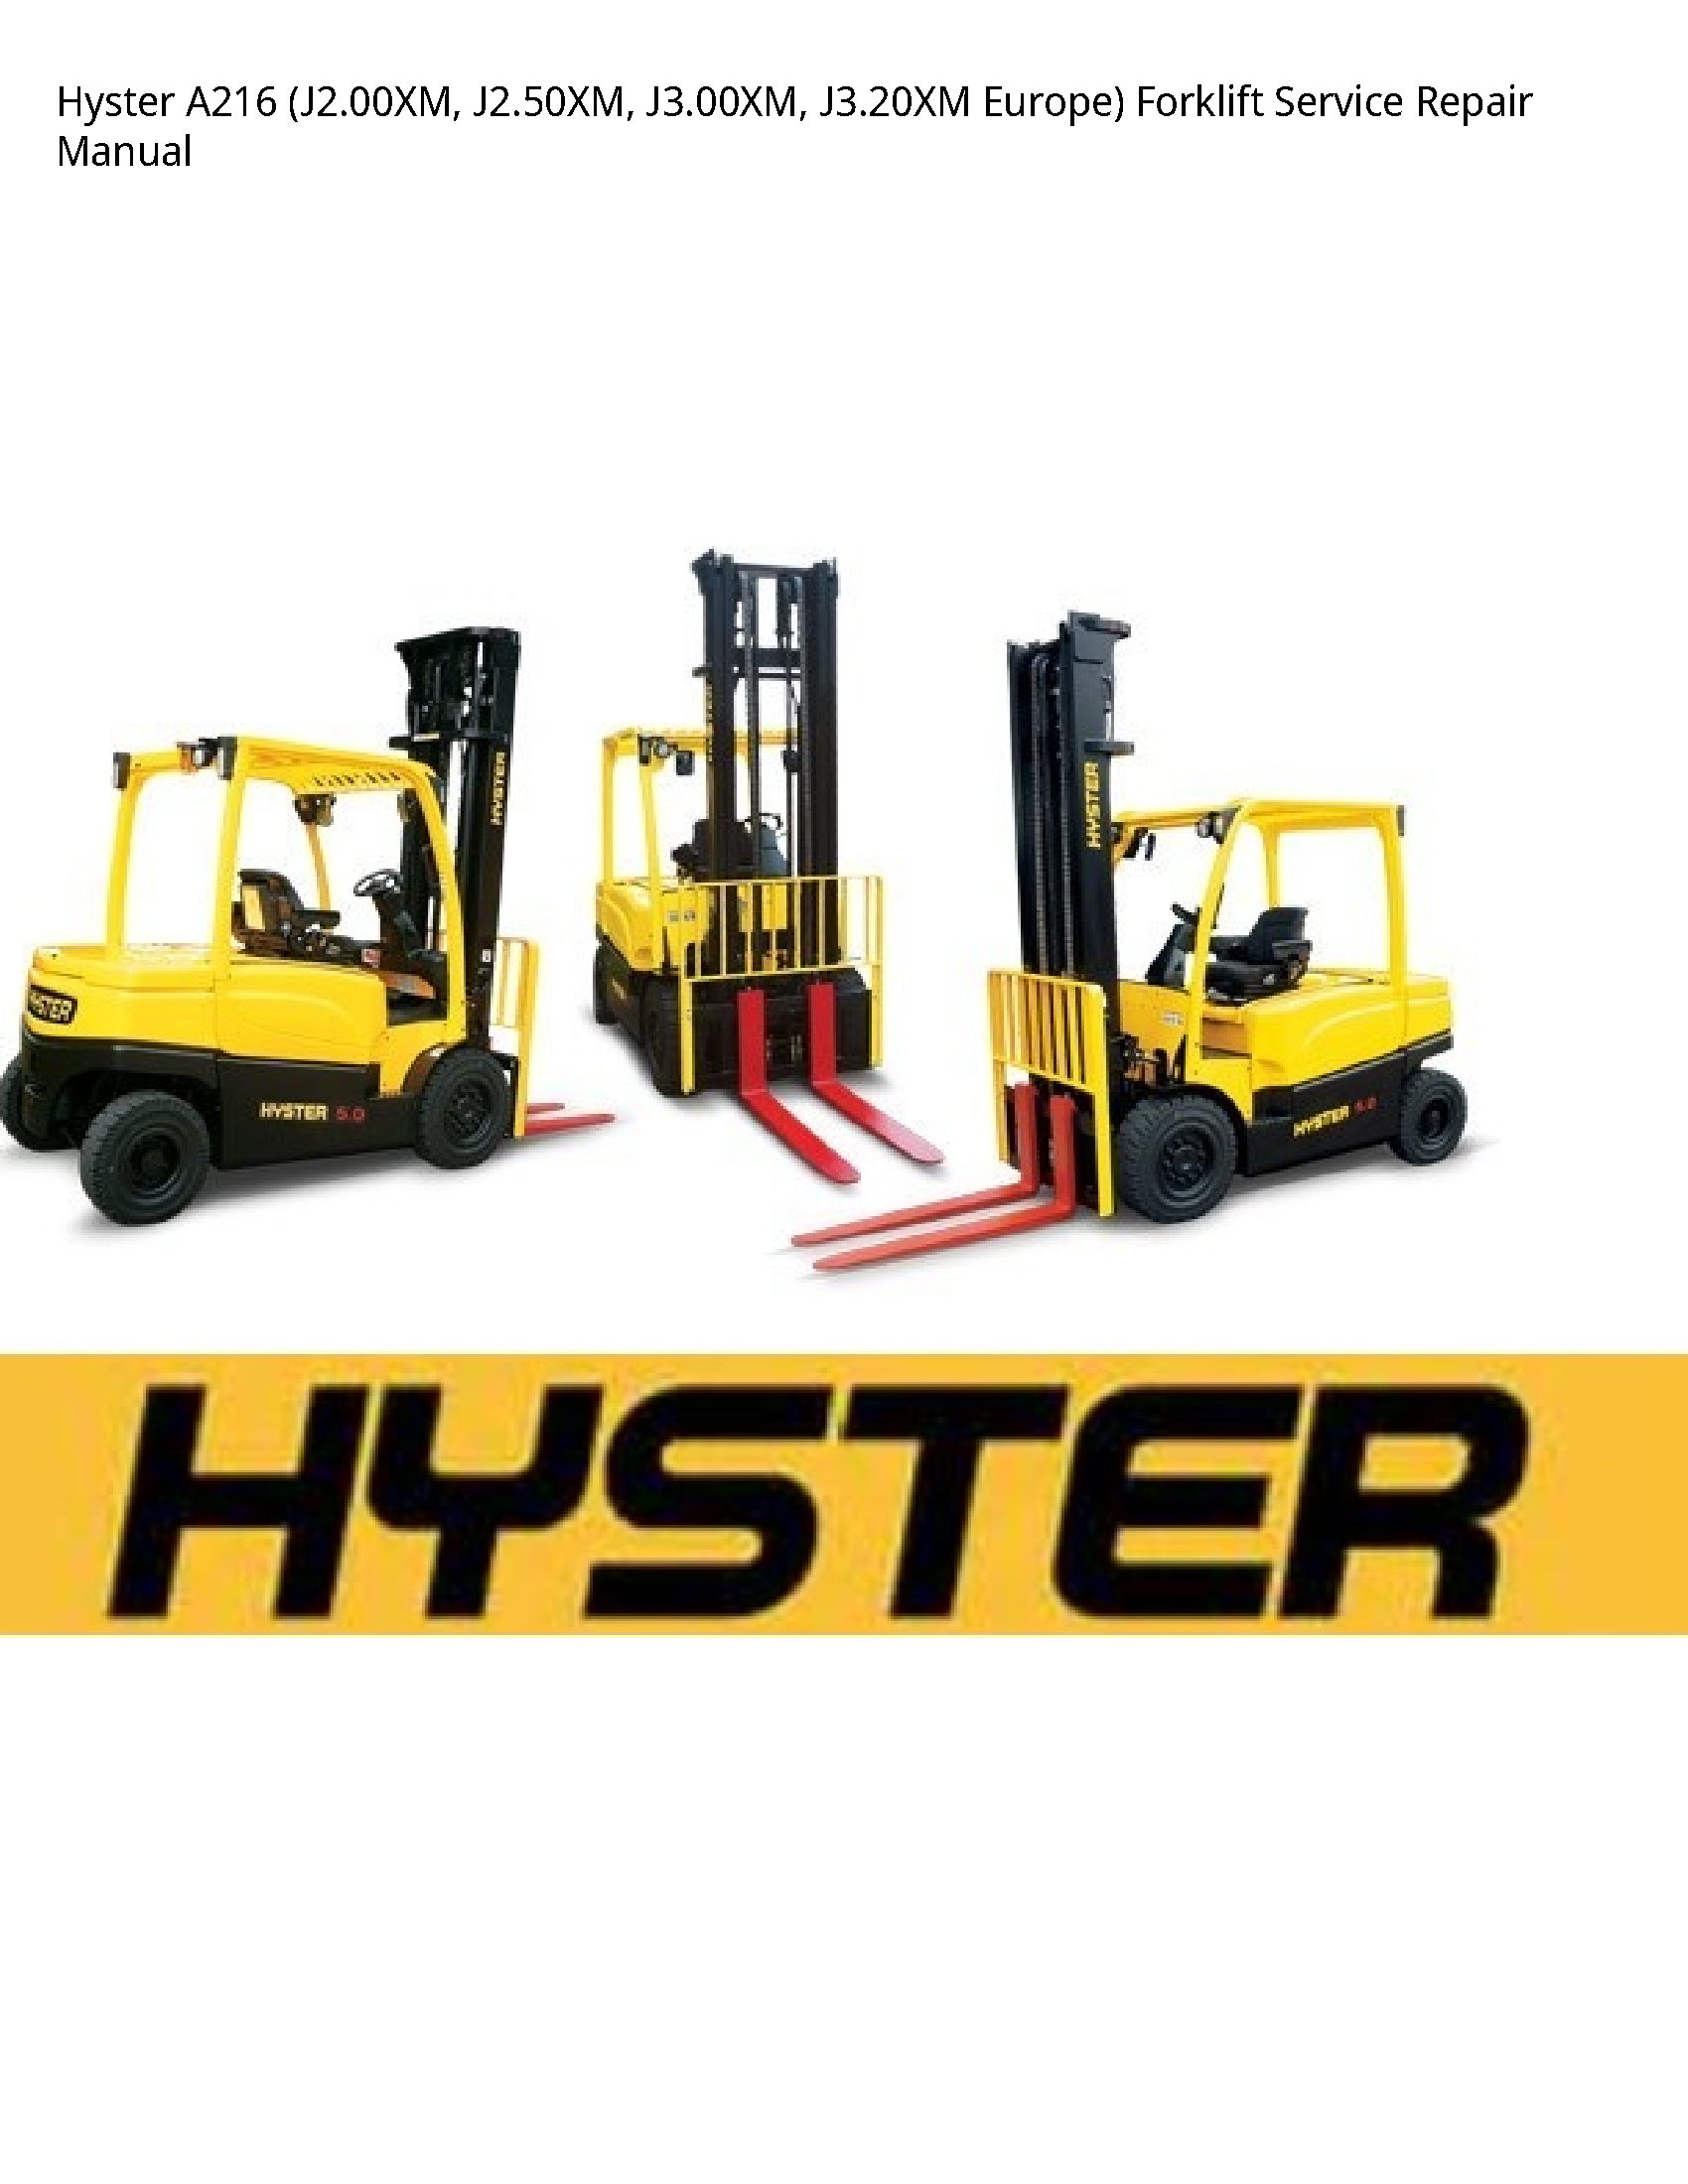 Hyster A216 Europe) Forklift manual